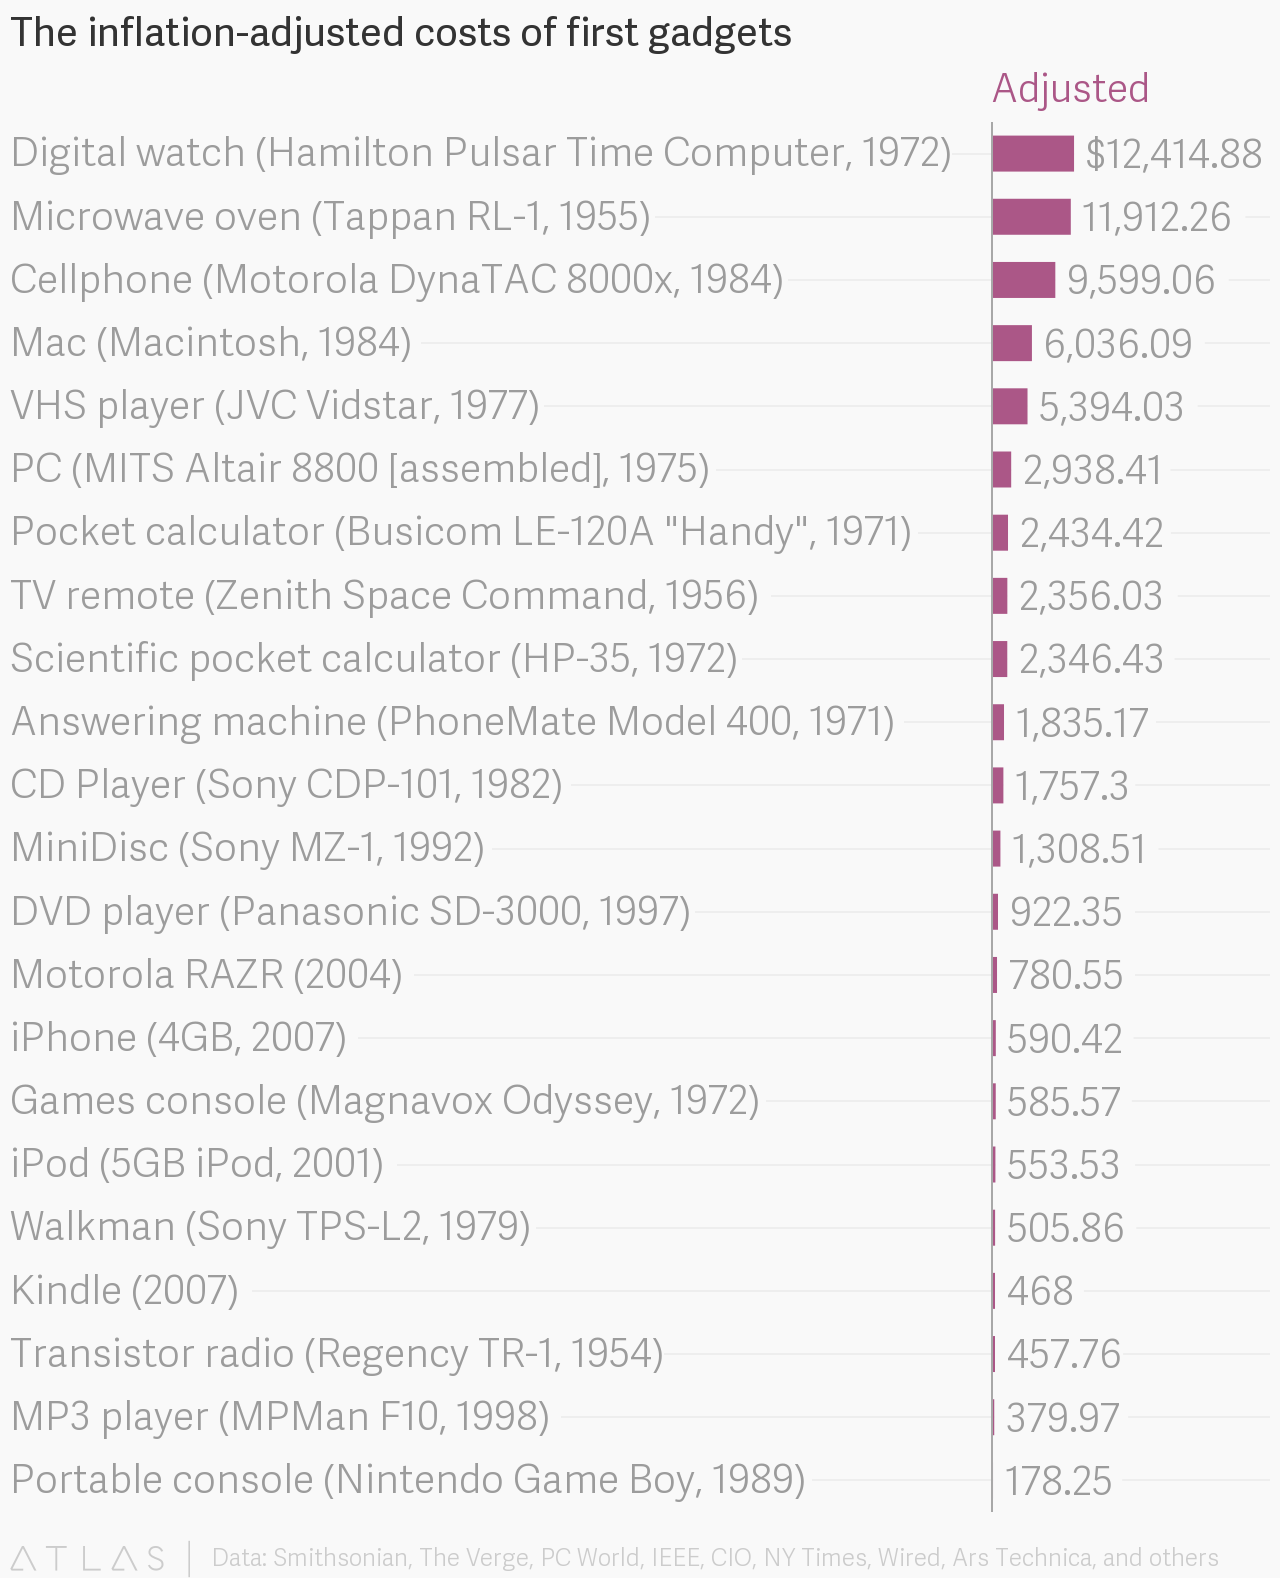 The inflation-adjusted costs of first gadgets